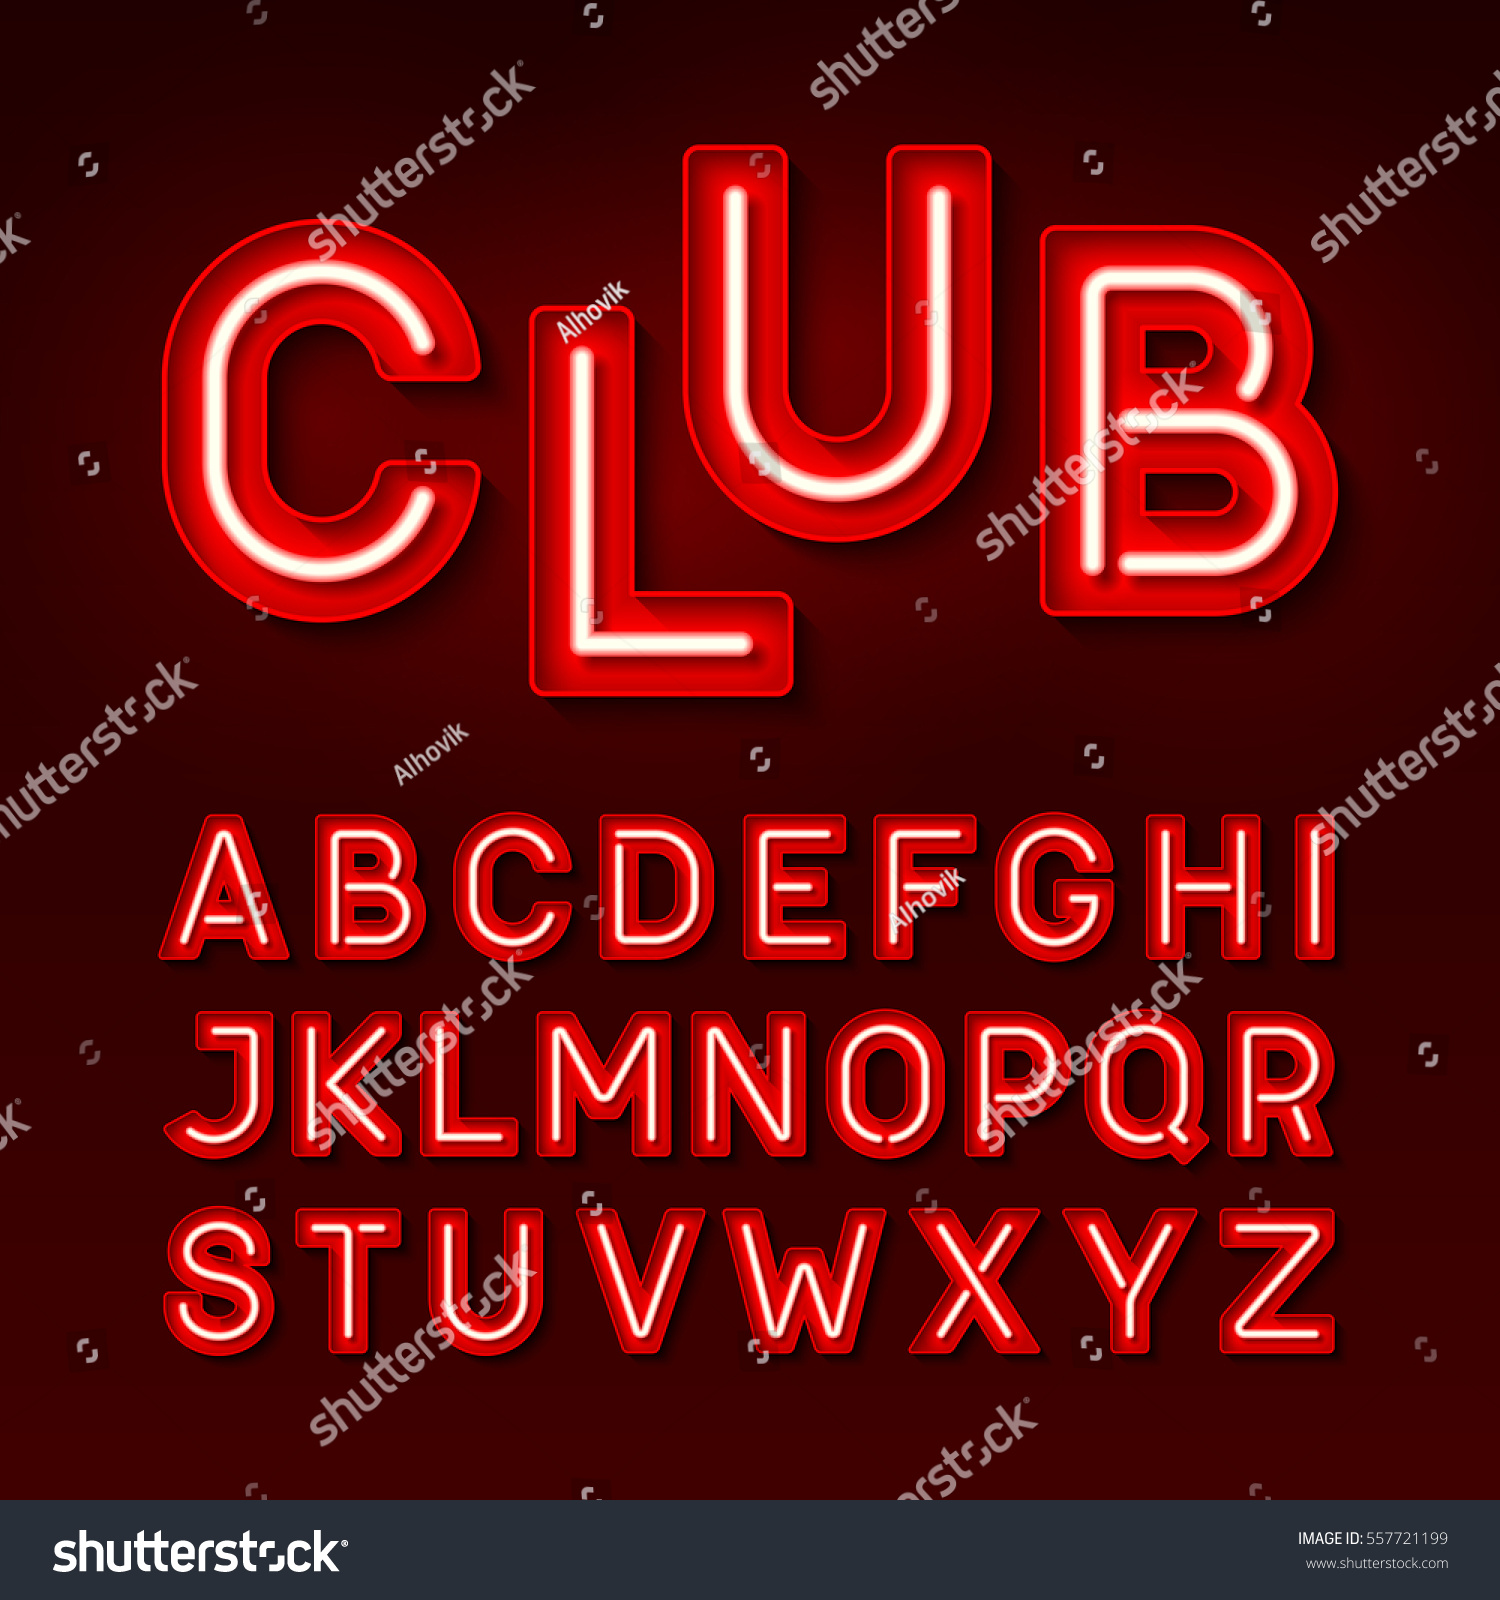 Night Club Neon Font Broadway Style Vectores En Stock 557721199 ...